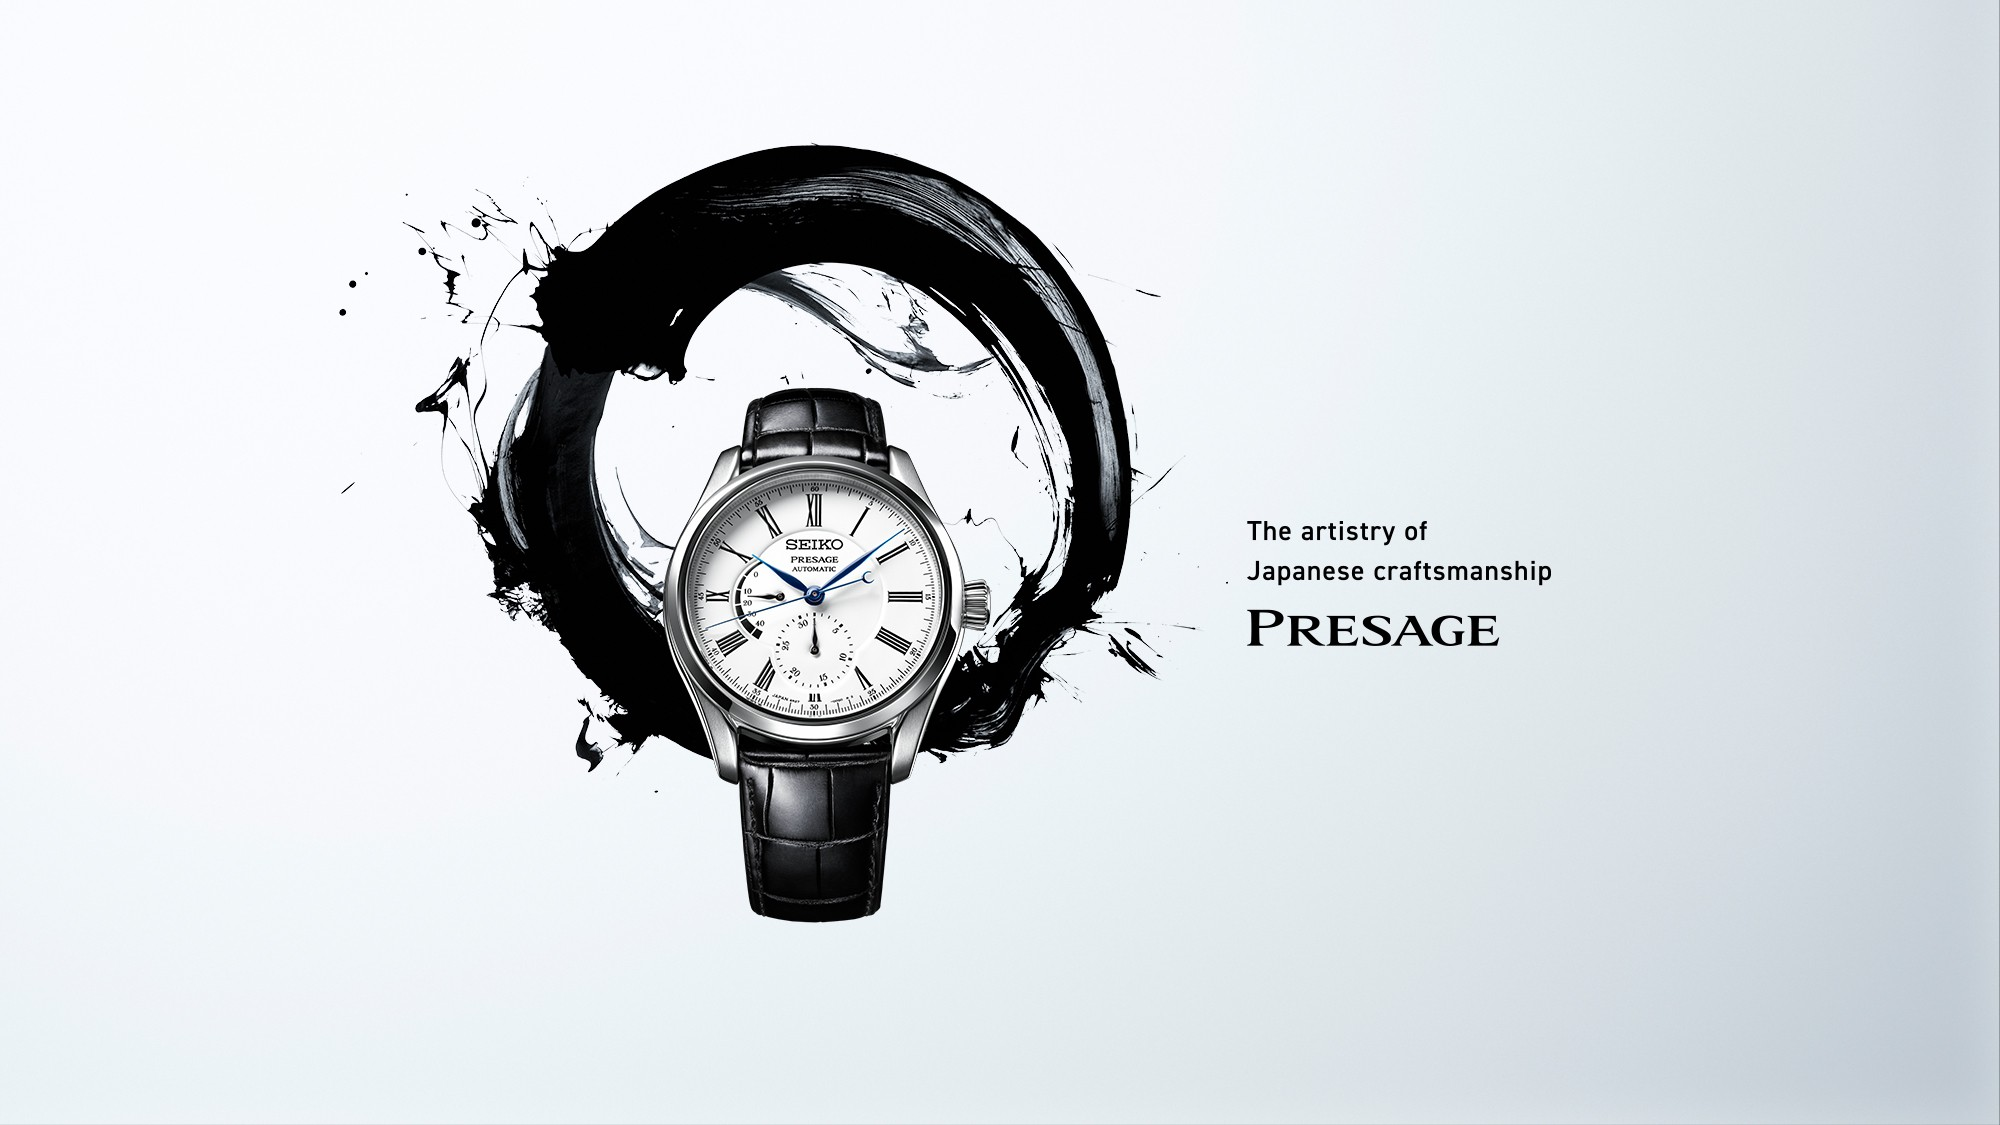 presage-main-visual artistry japanese craftsmanship